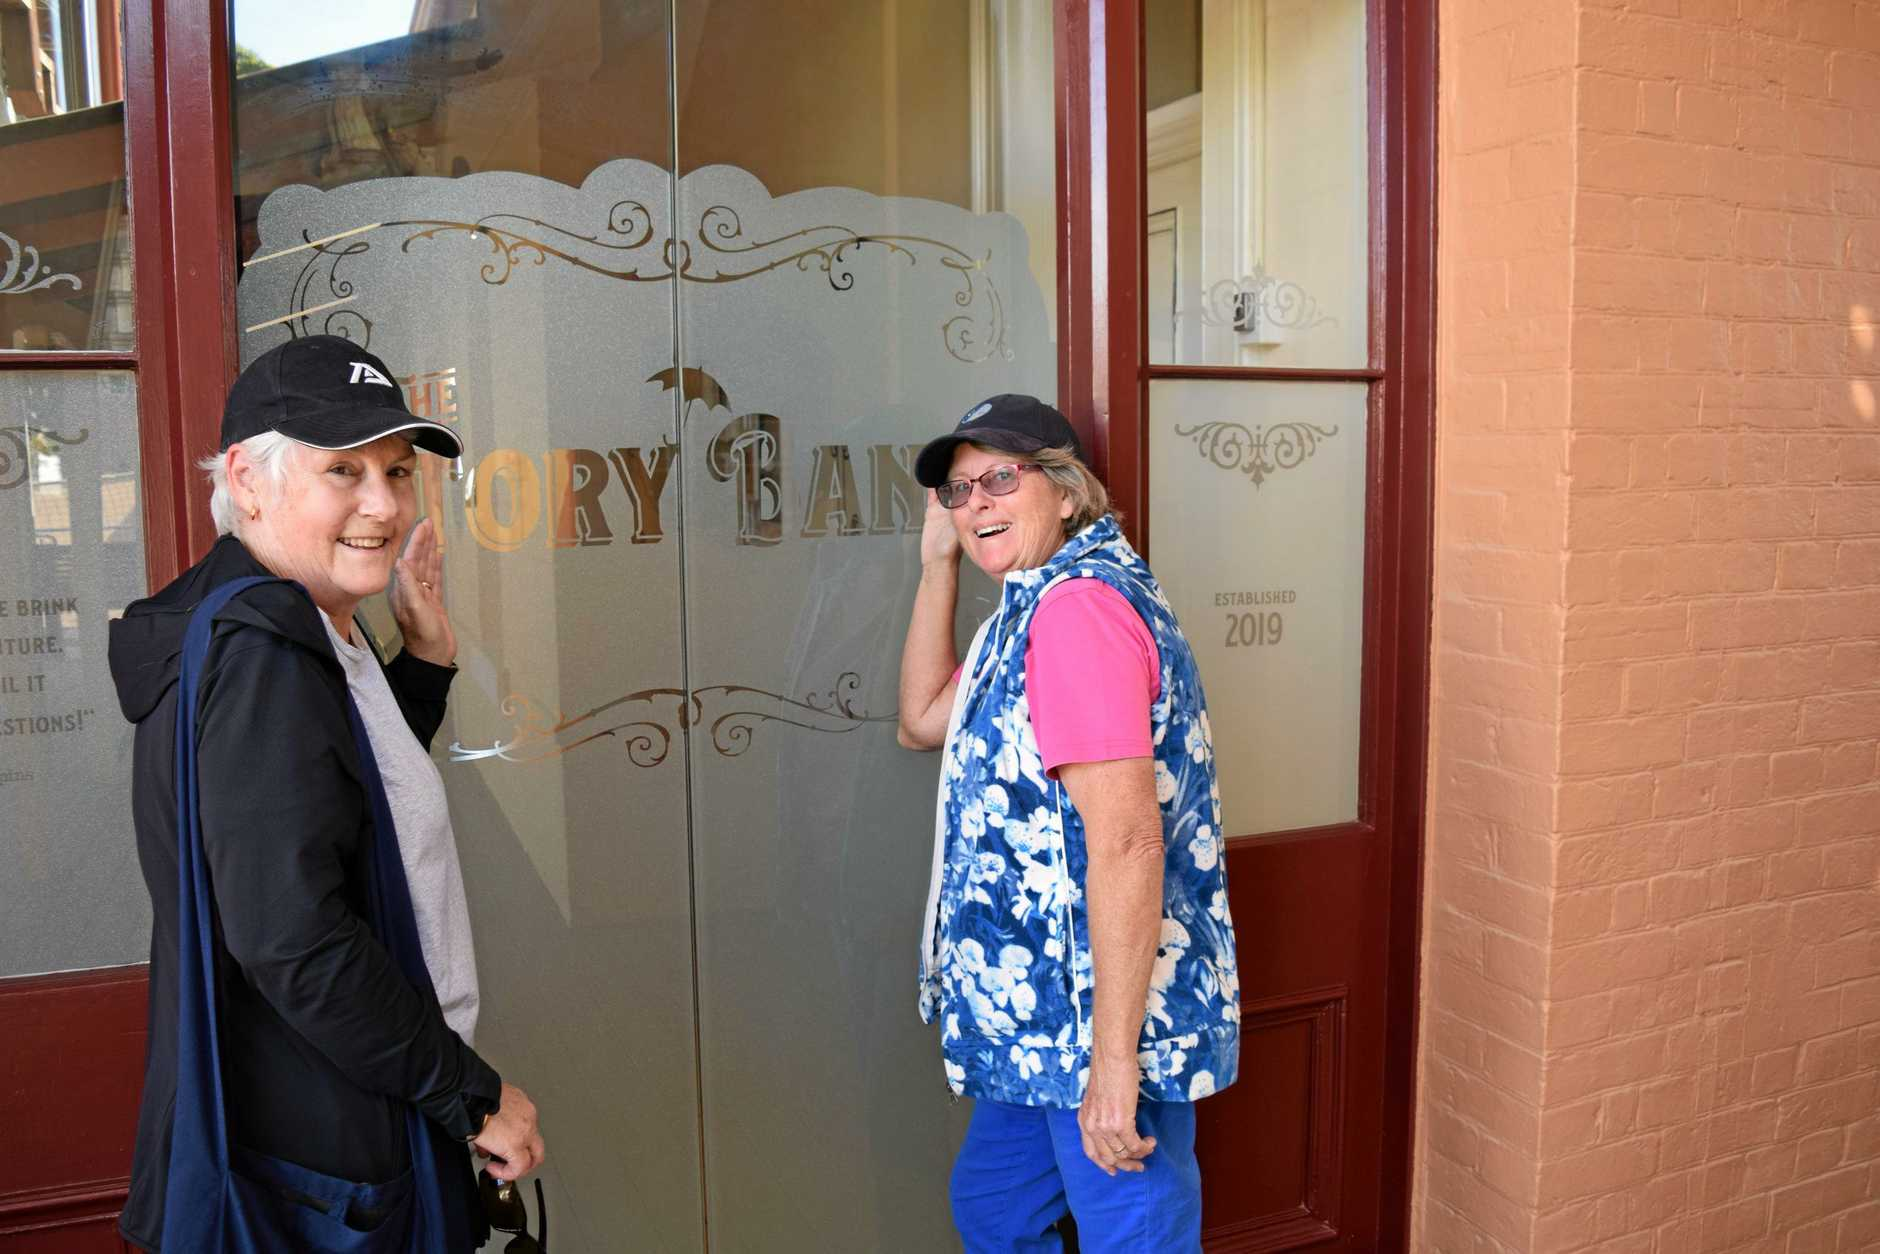 MAGICAL MOMENT: Bookings are a must for the recently opened Story Bank in Maryborough as Beelbi Creek resident Helen Wegner and family visitor from South Australia June Hills (left) found out when they arrived on opening day.